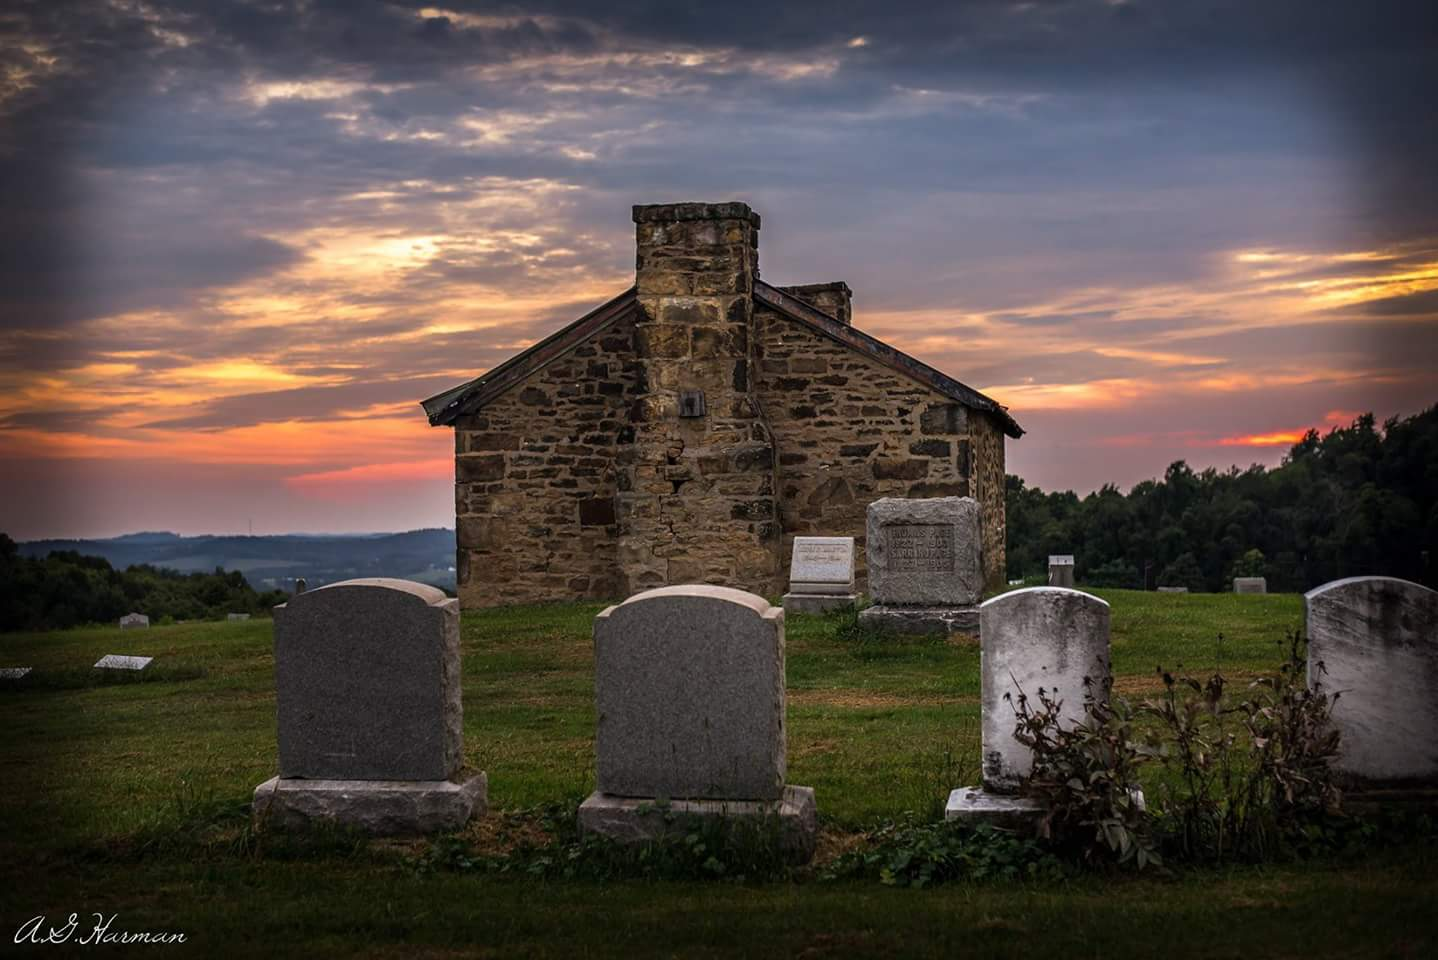 The sun sets on the Providence Chapel.